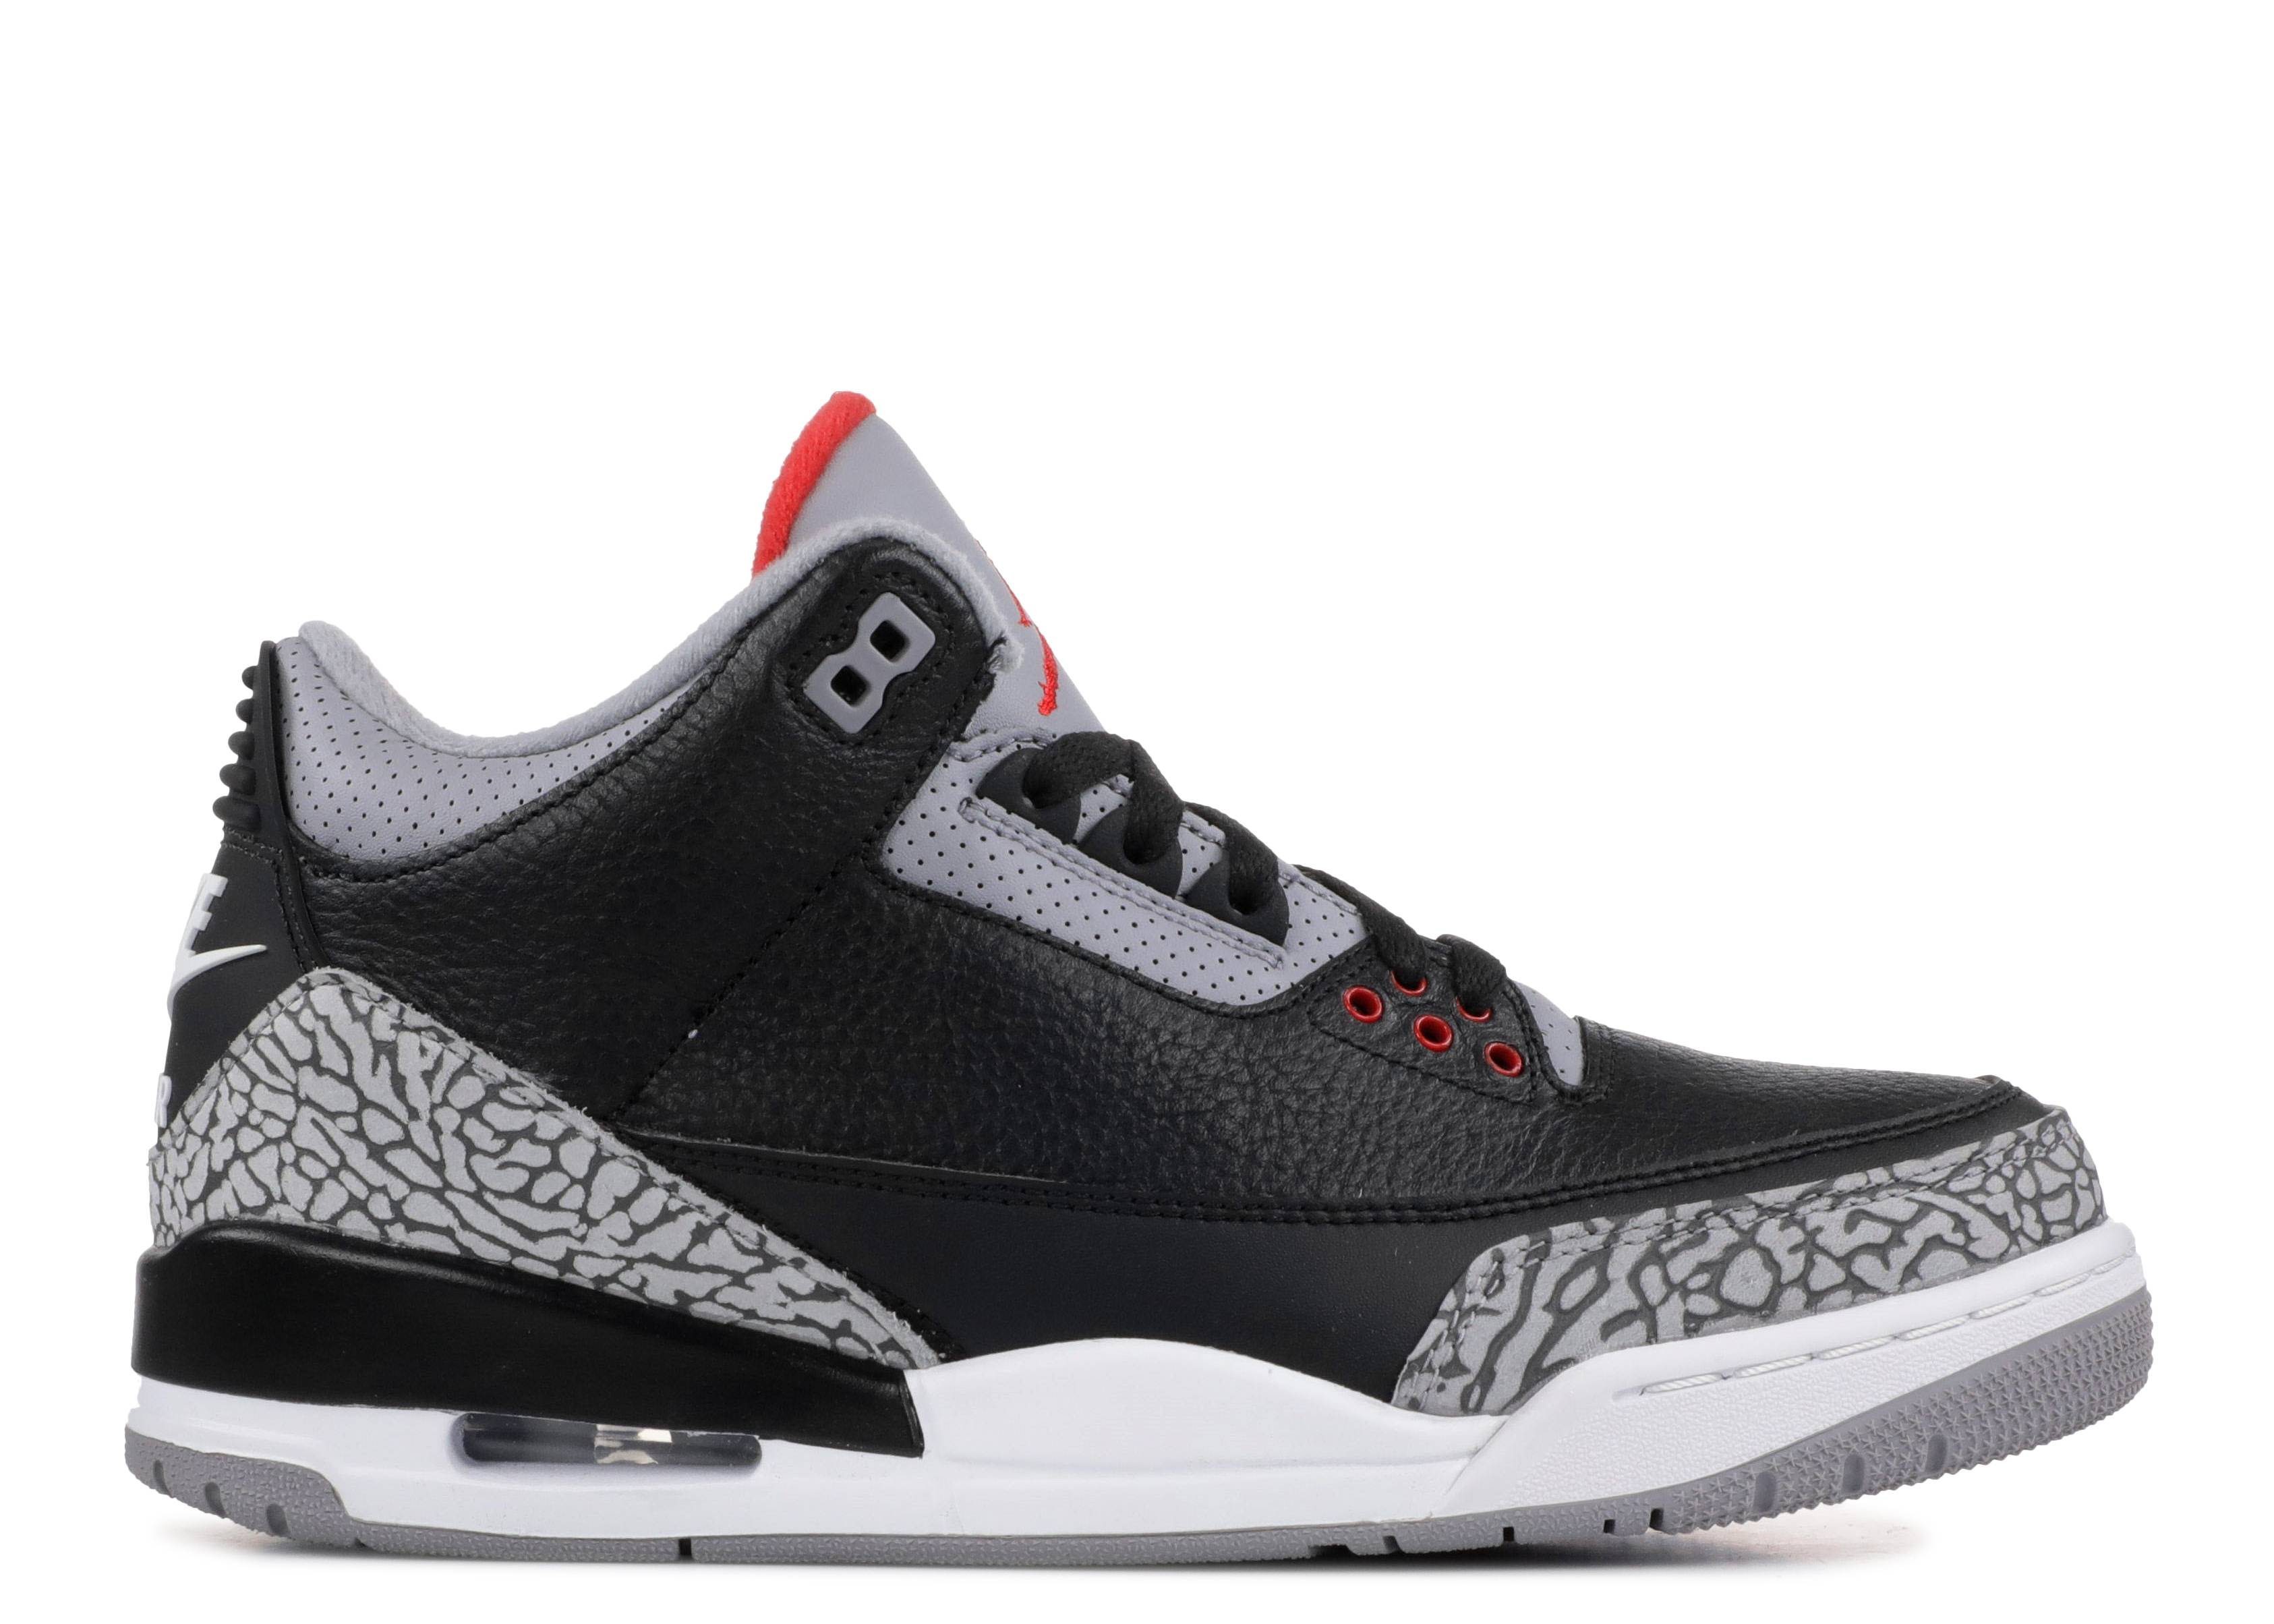 82492813f3e19c Air Jordan 3 (III) Shoes - Nike